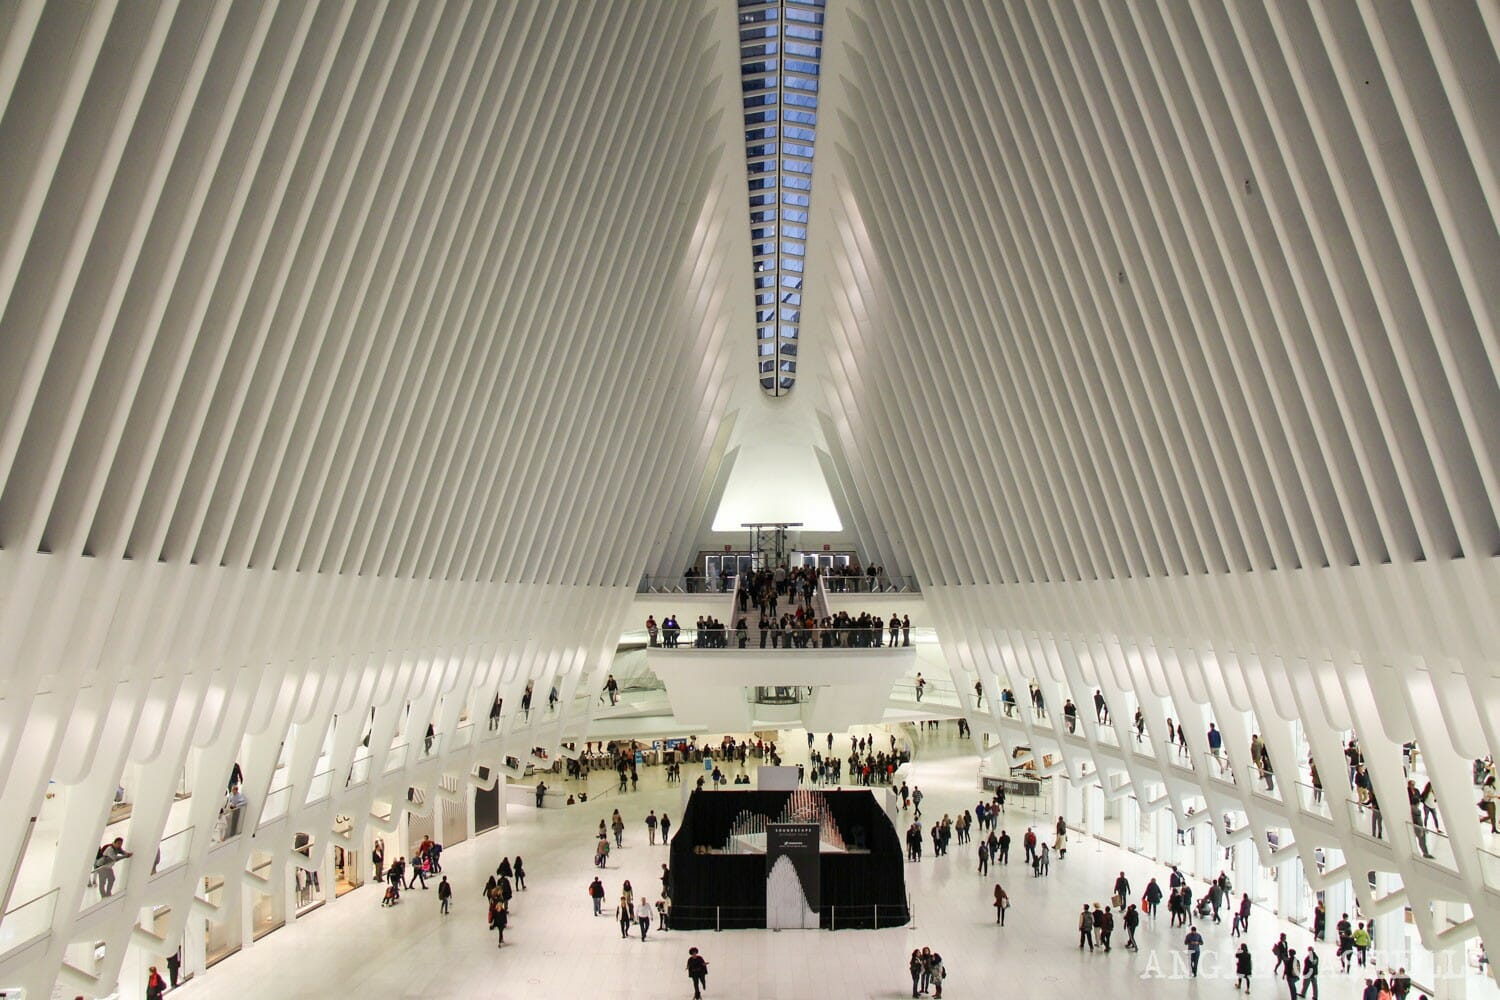 El Oculus estacin y centro comercial en el World Trade Center